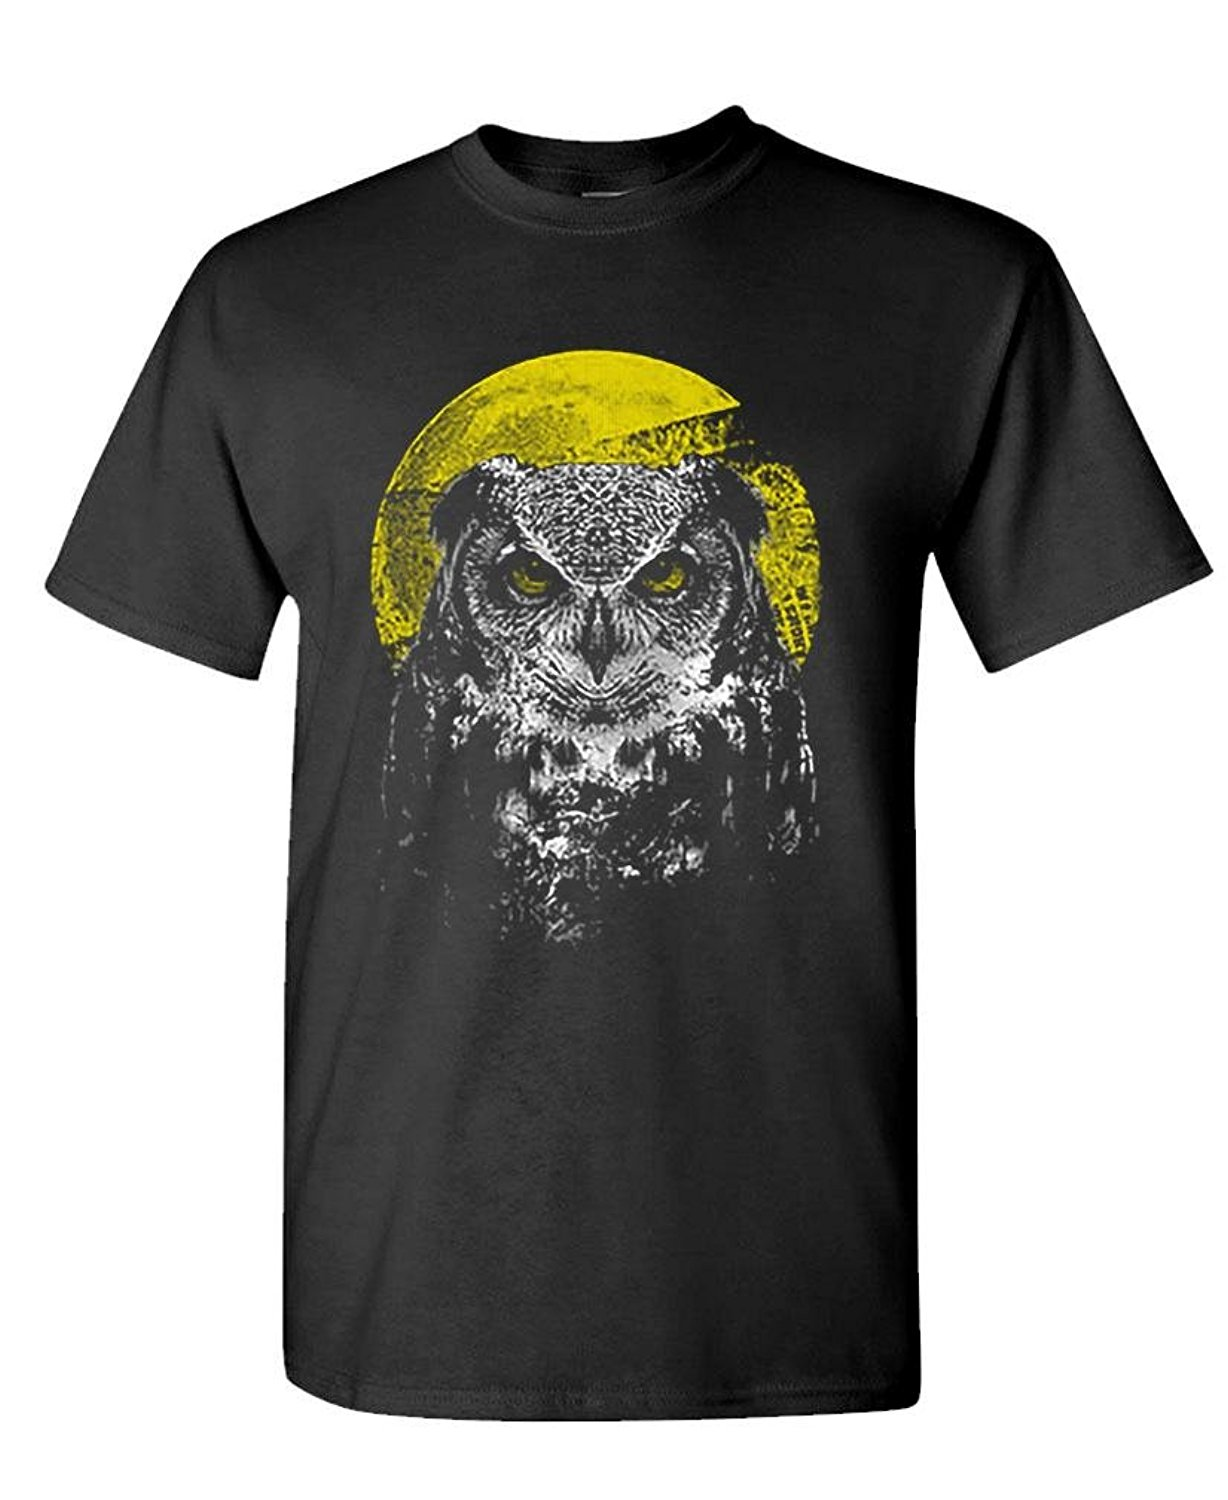 Online buy wholesale native american shirts from china for Wildlife t shirts wholesale